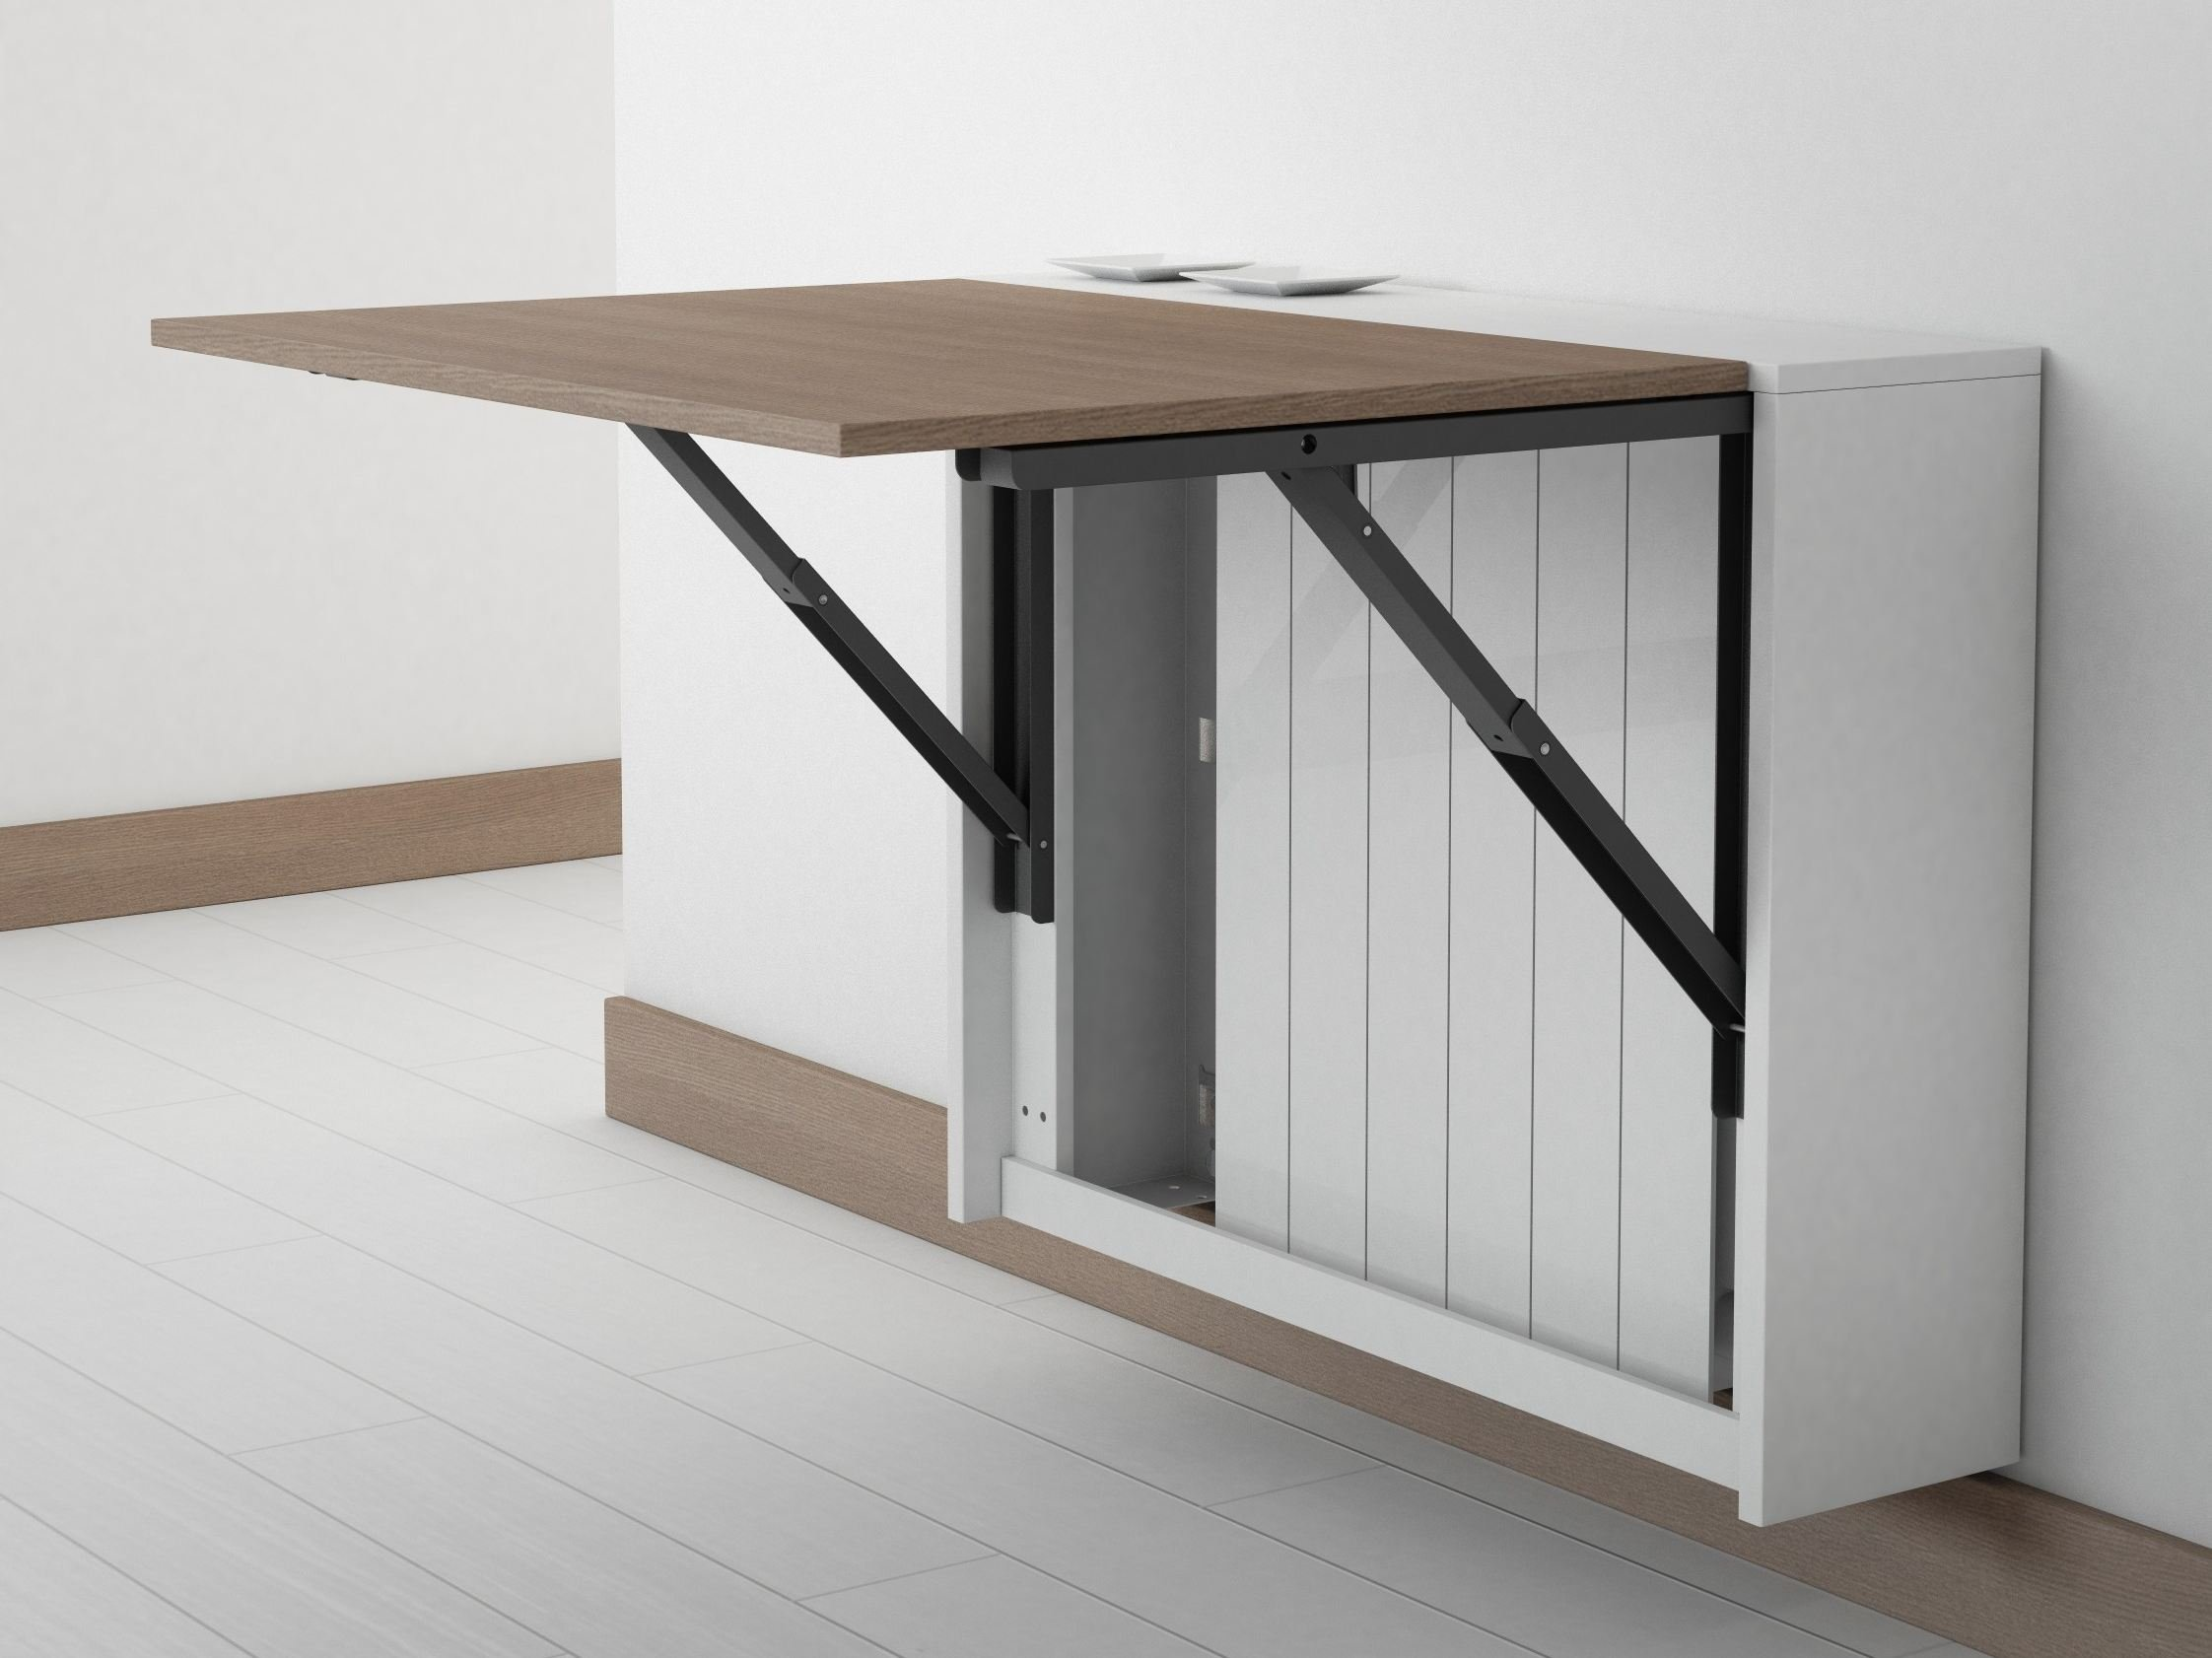 Bjursta Folding Table Images For Extendable